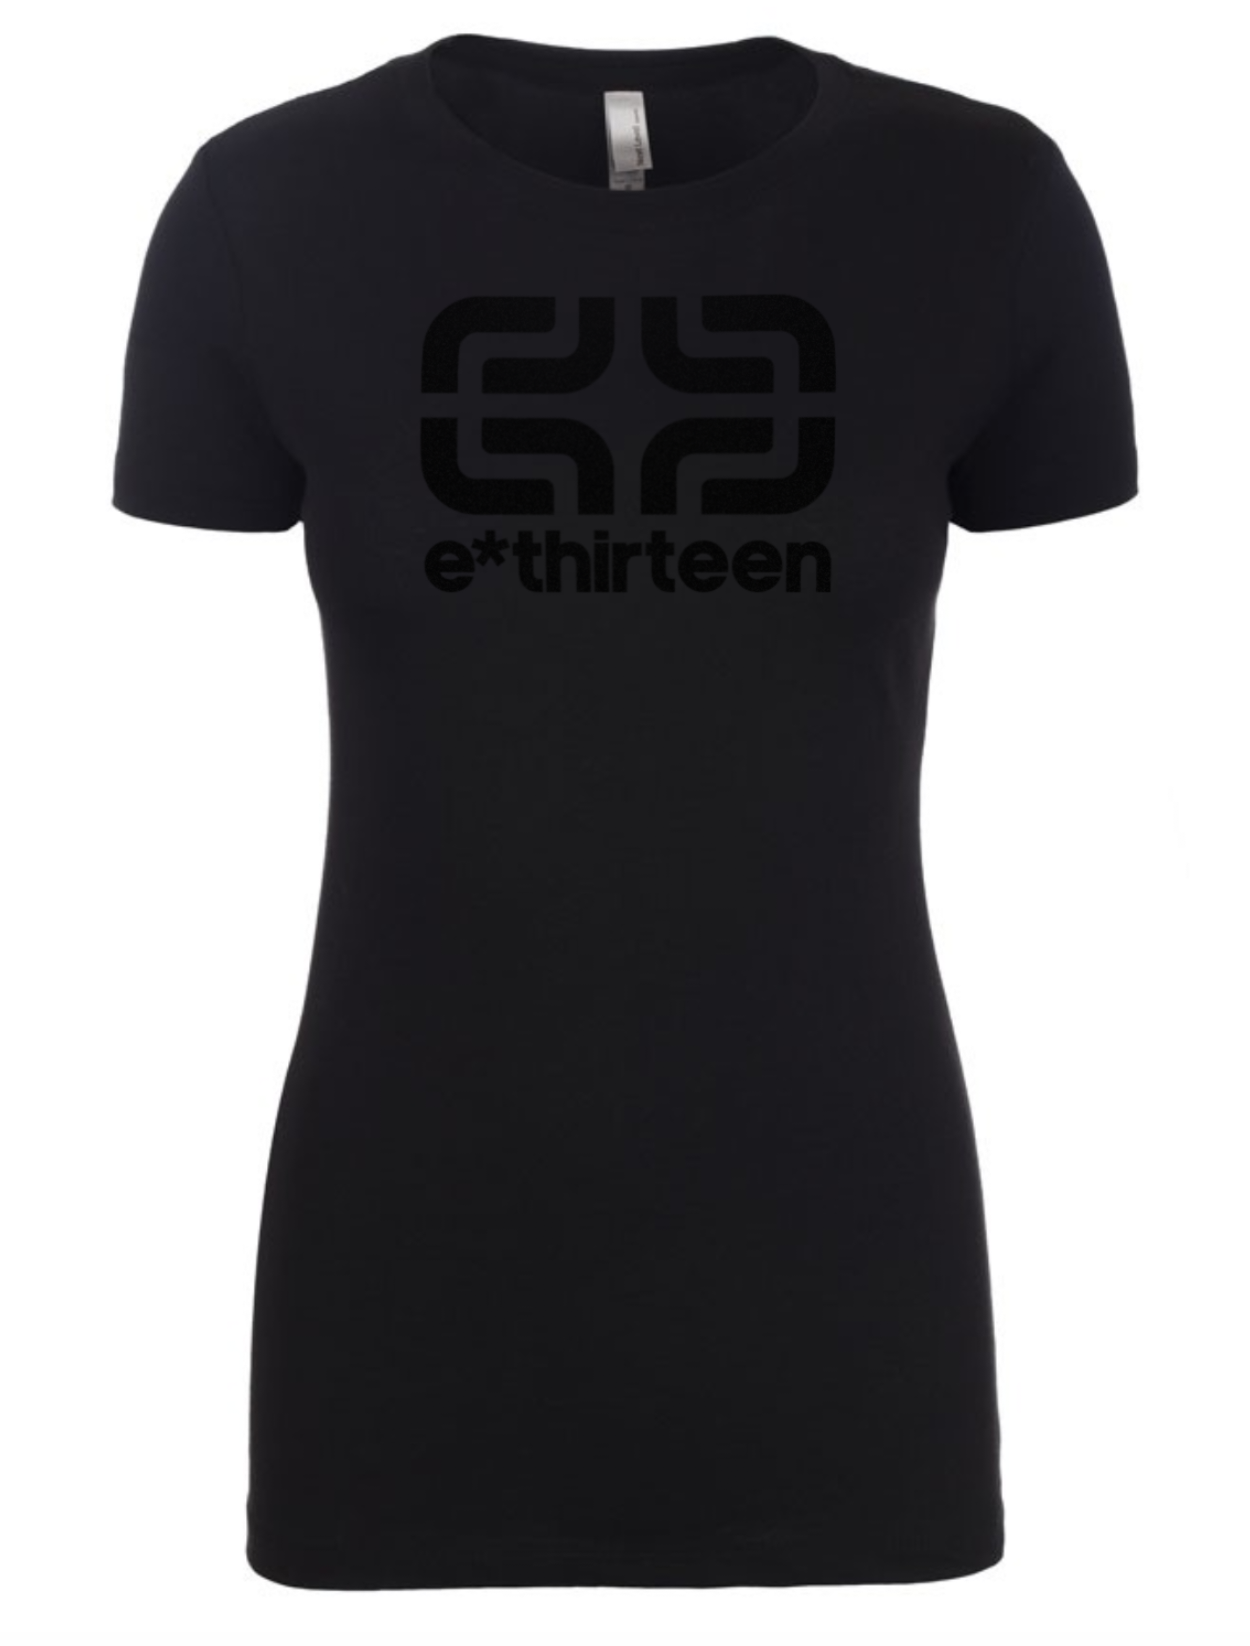 e*thirteen Women's Icon Tee